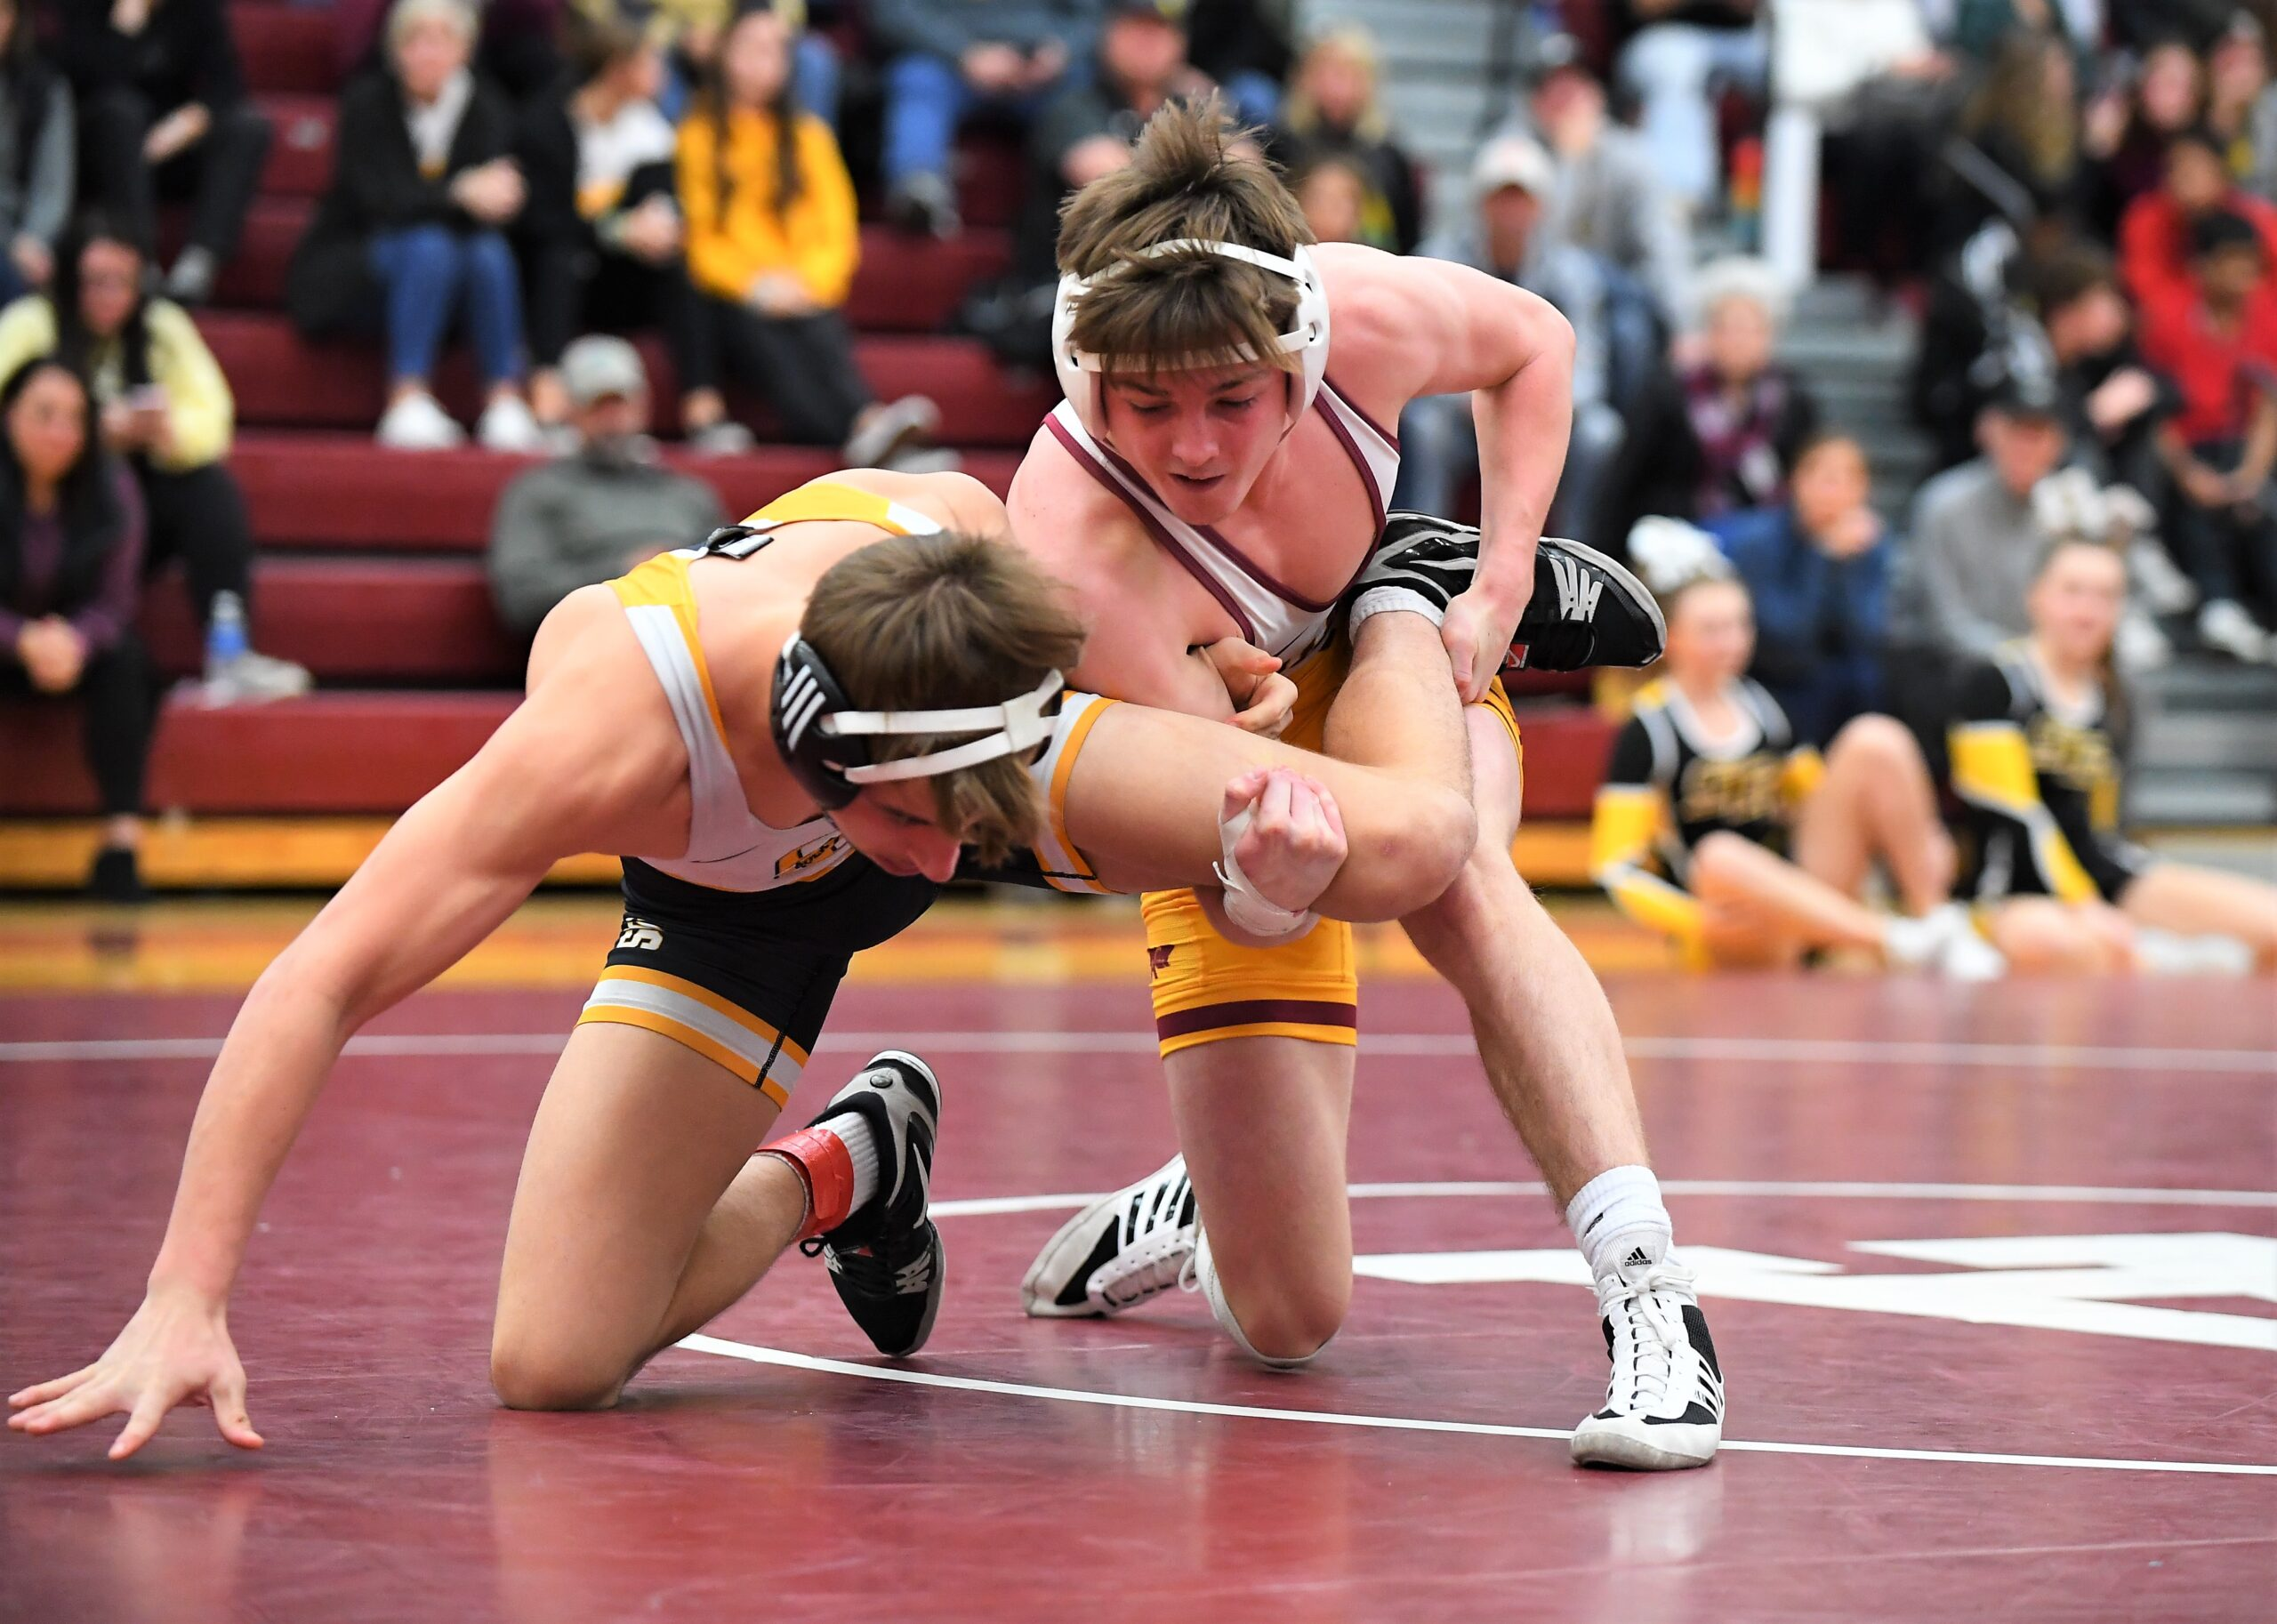 Hawk wrestlers look to continue Ankeny's recent run of championship success